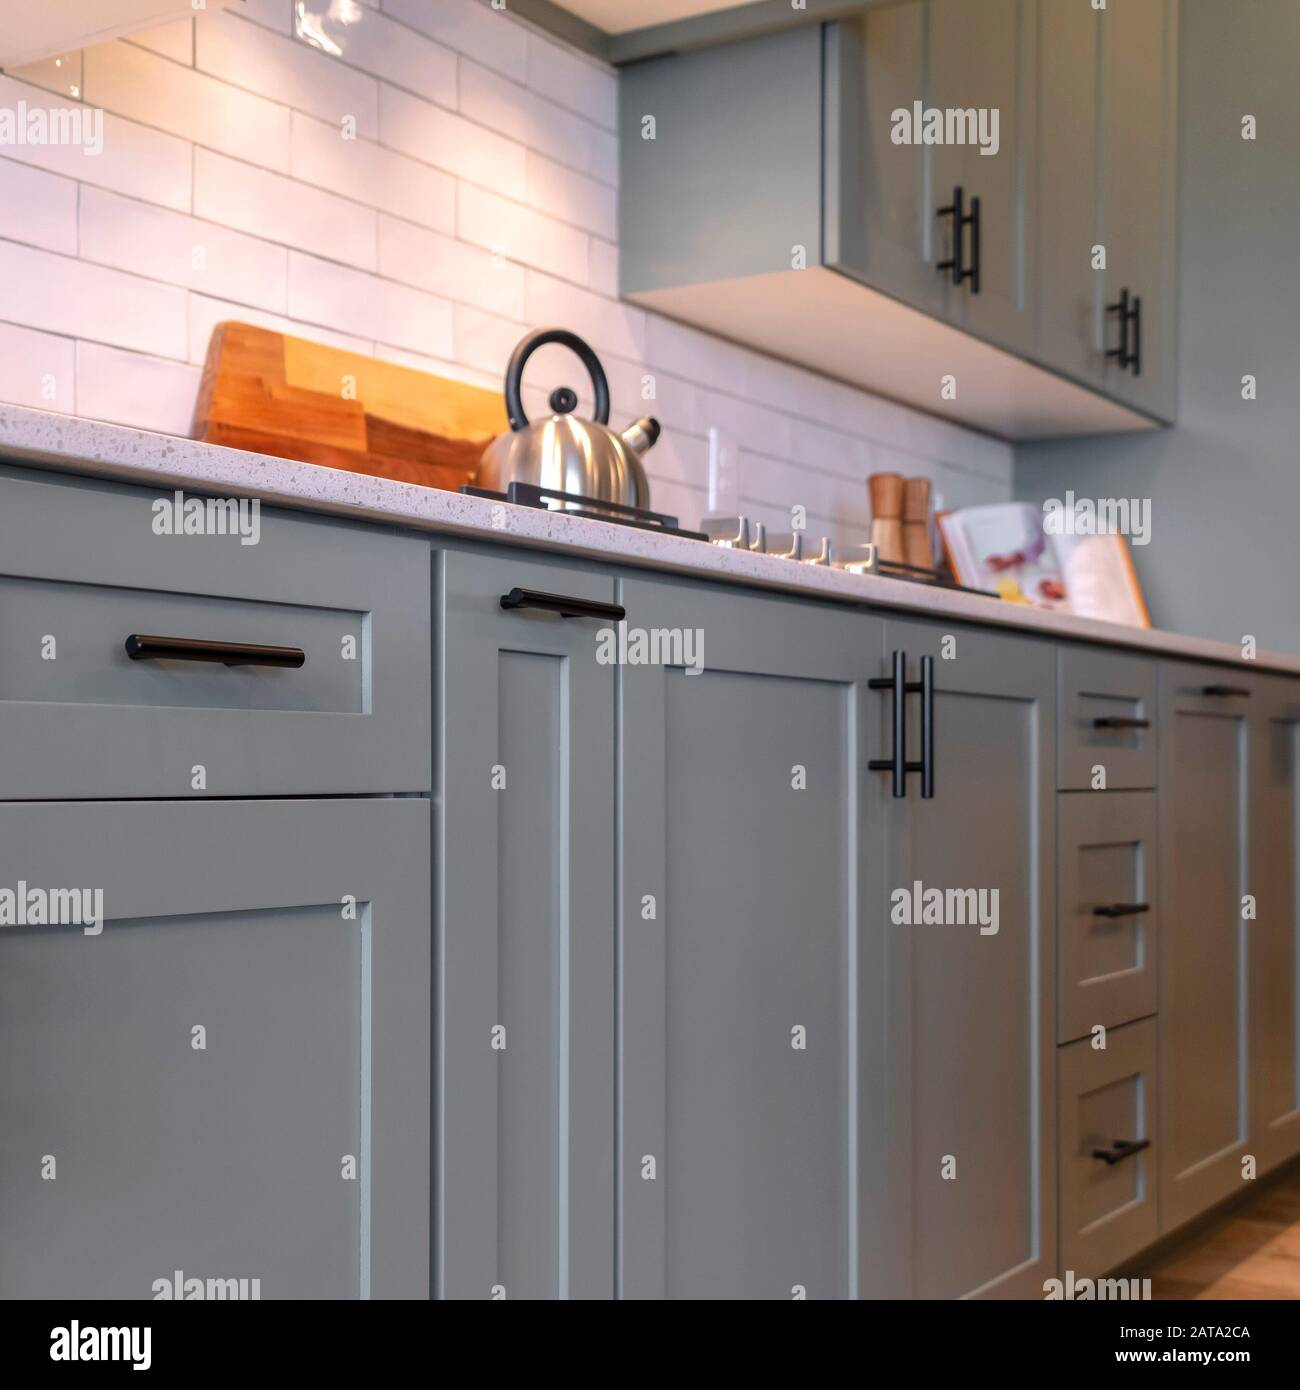 Photo Square Kitchen Cabinets With White Countertop Black Handles And Tile Backsplash Stock Photo Alamy